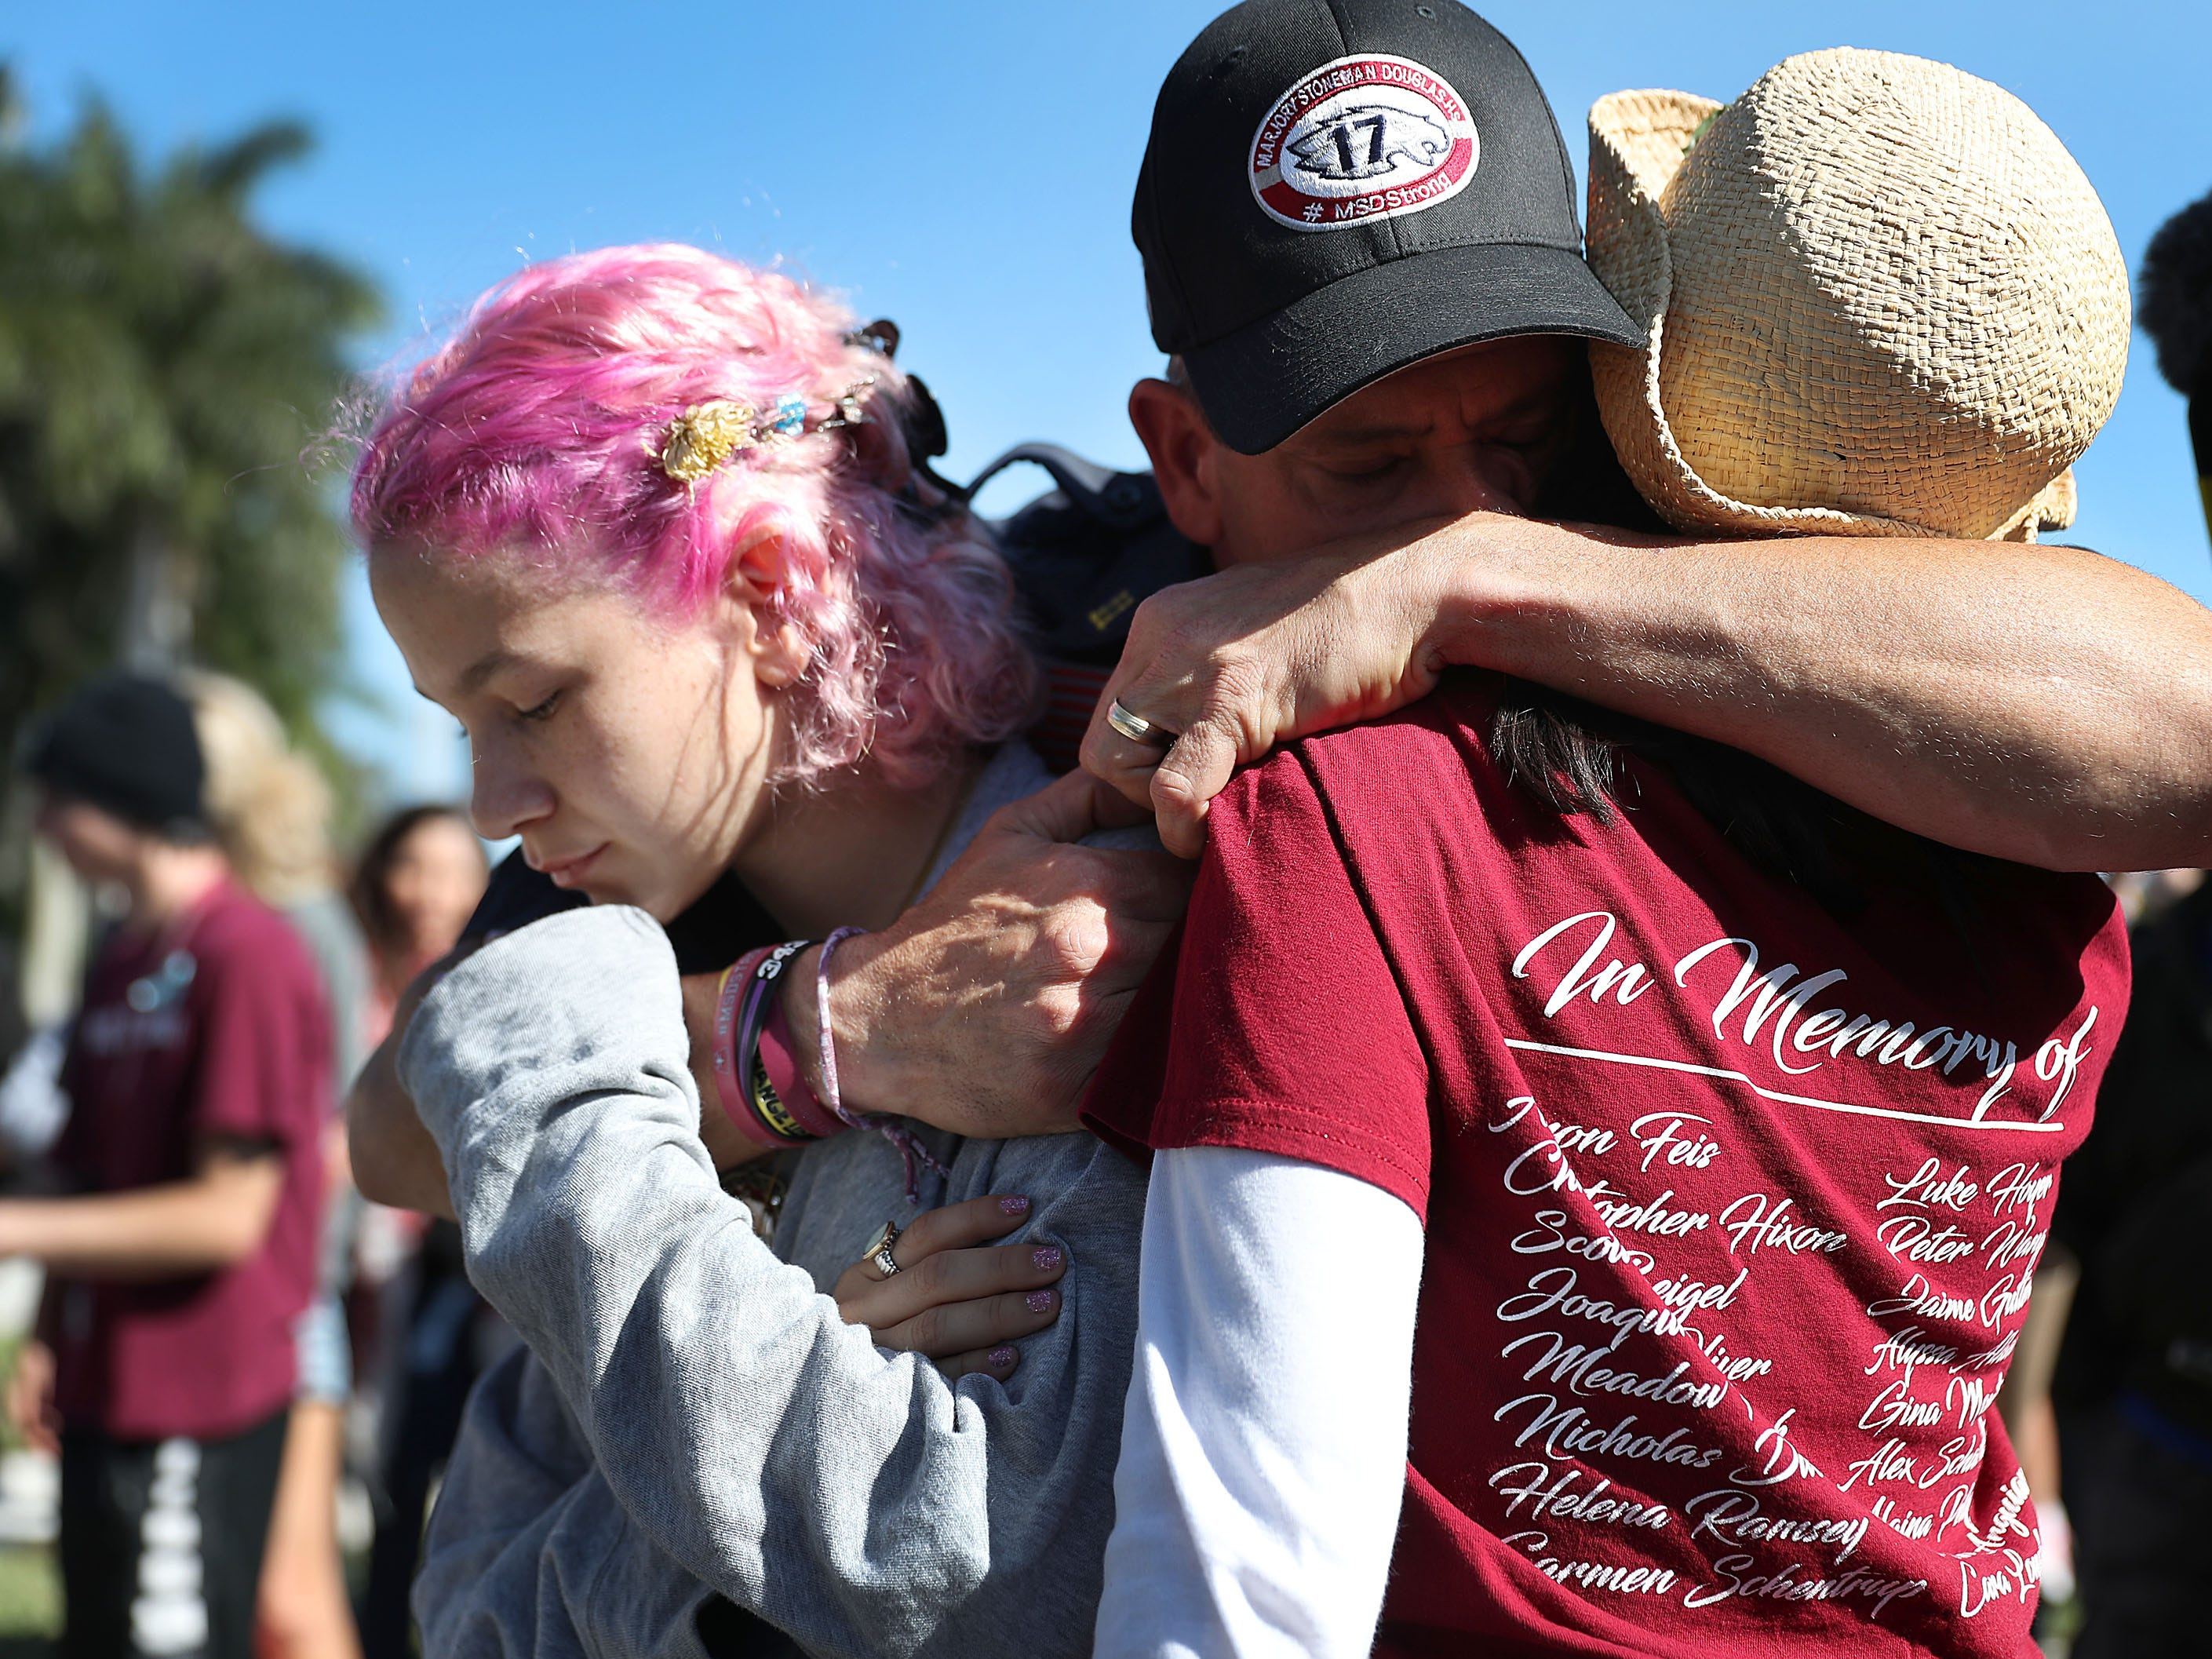 Anthony Gonzalez hugs his daughter, Victoria Gonzalez, and her teacher Ronit Reoven as they visit a memorial set up near Marjory Stoneman Douglas High School, where 14 students and three staff members were killed in a mass shooting a year ago in Parkland, Florida. Gonzalez is a captain at the Coral Springs Fire Department and responded to the shooting a year ago.